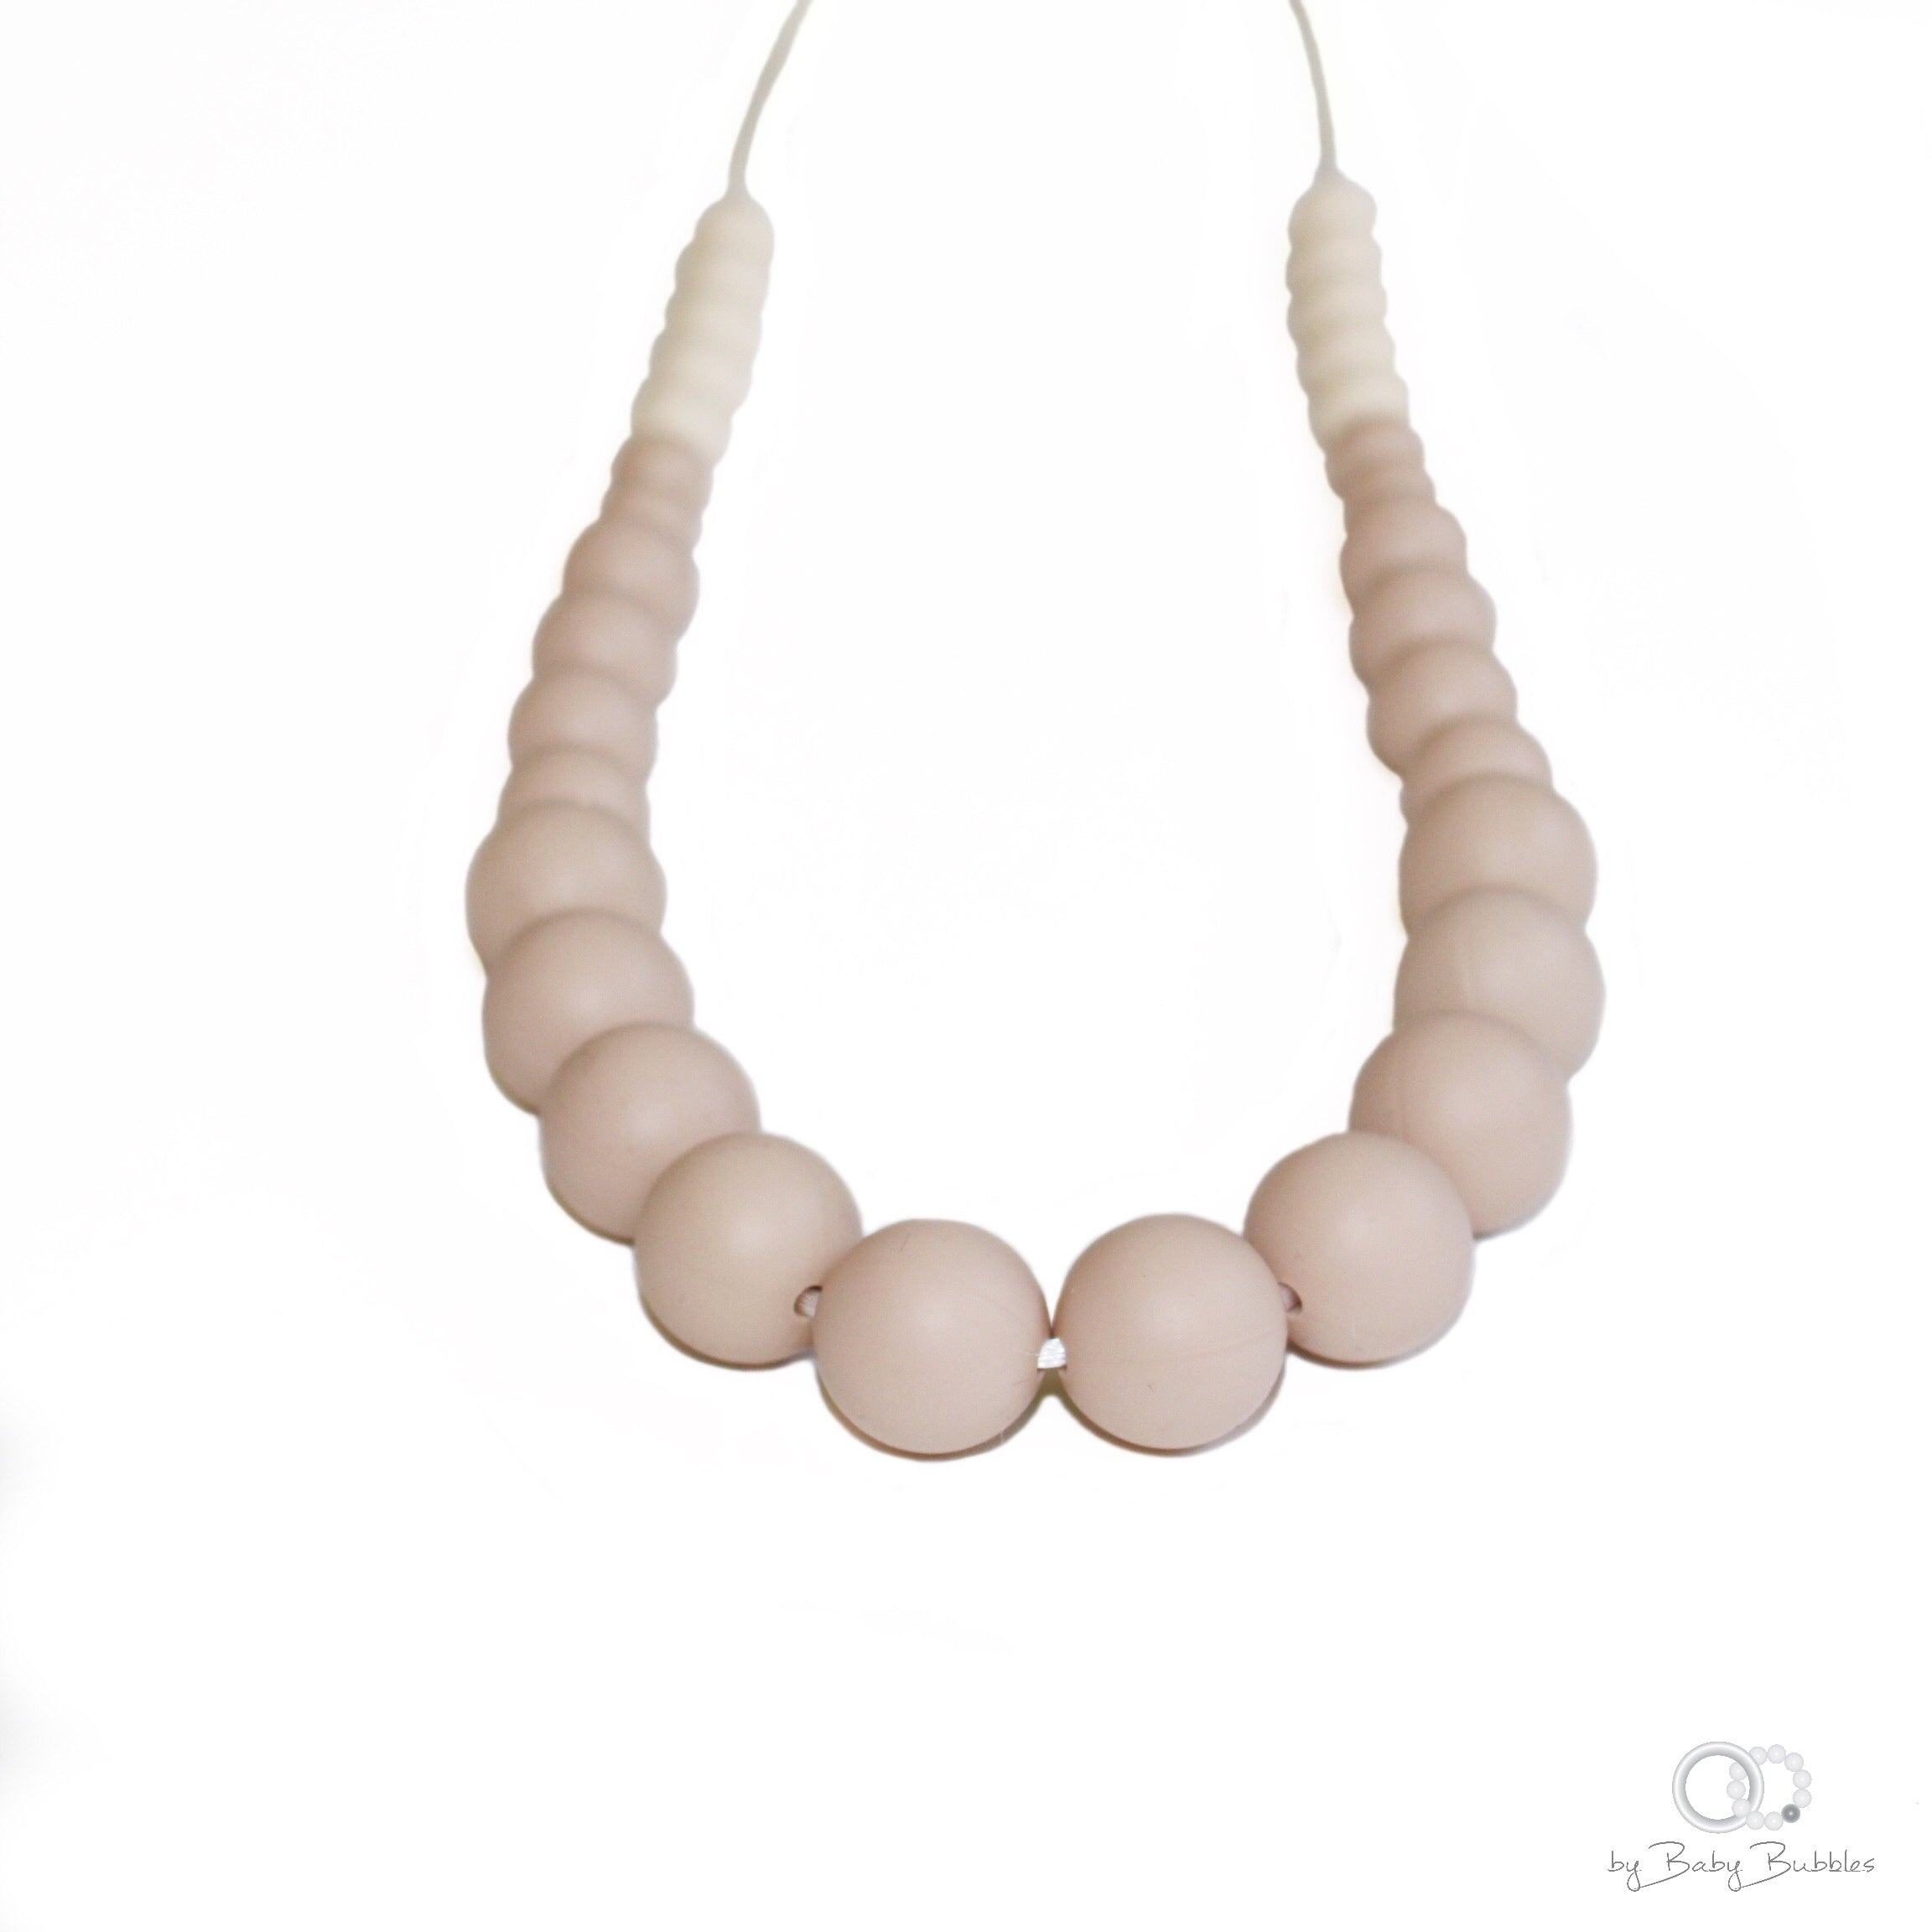 Sand colored silicone nursing necklace